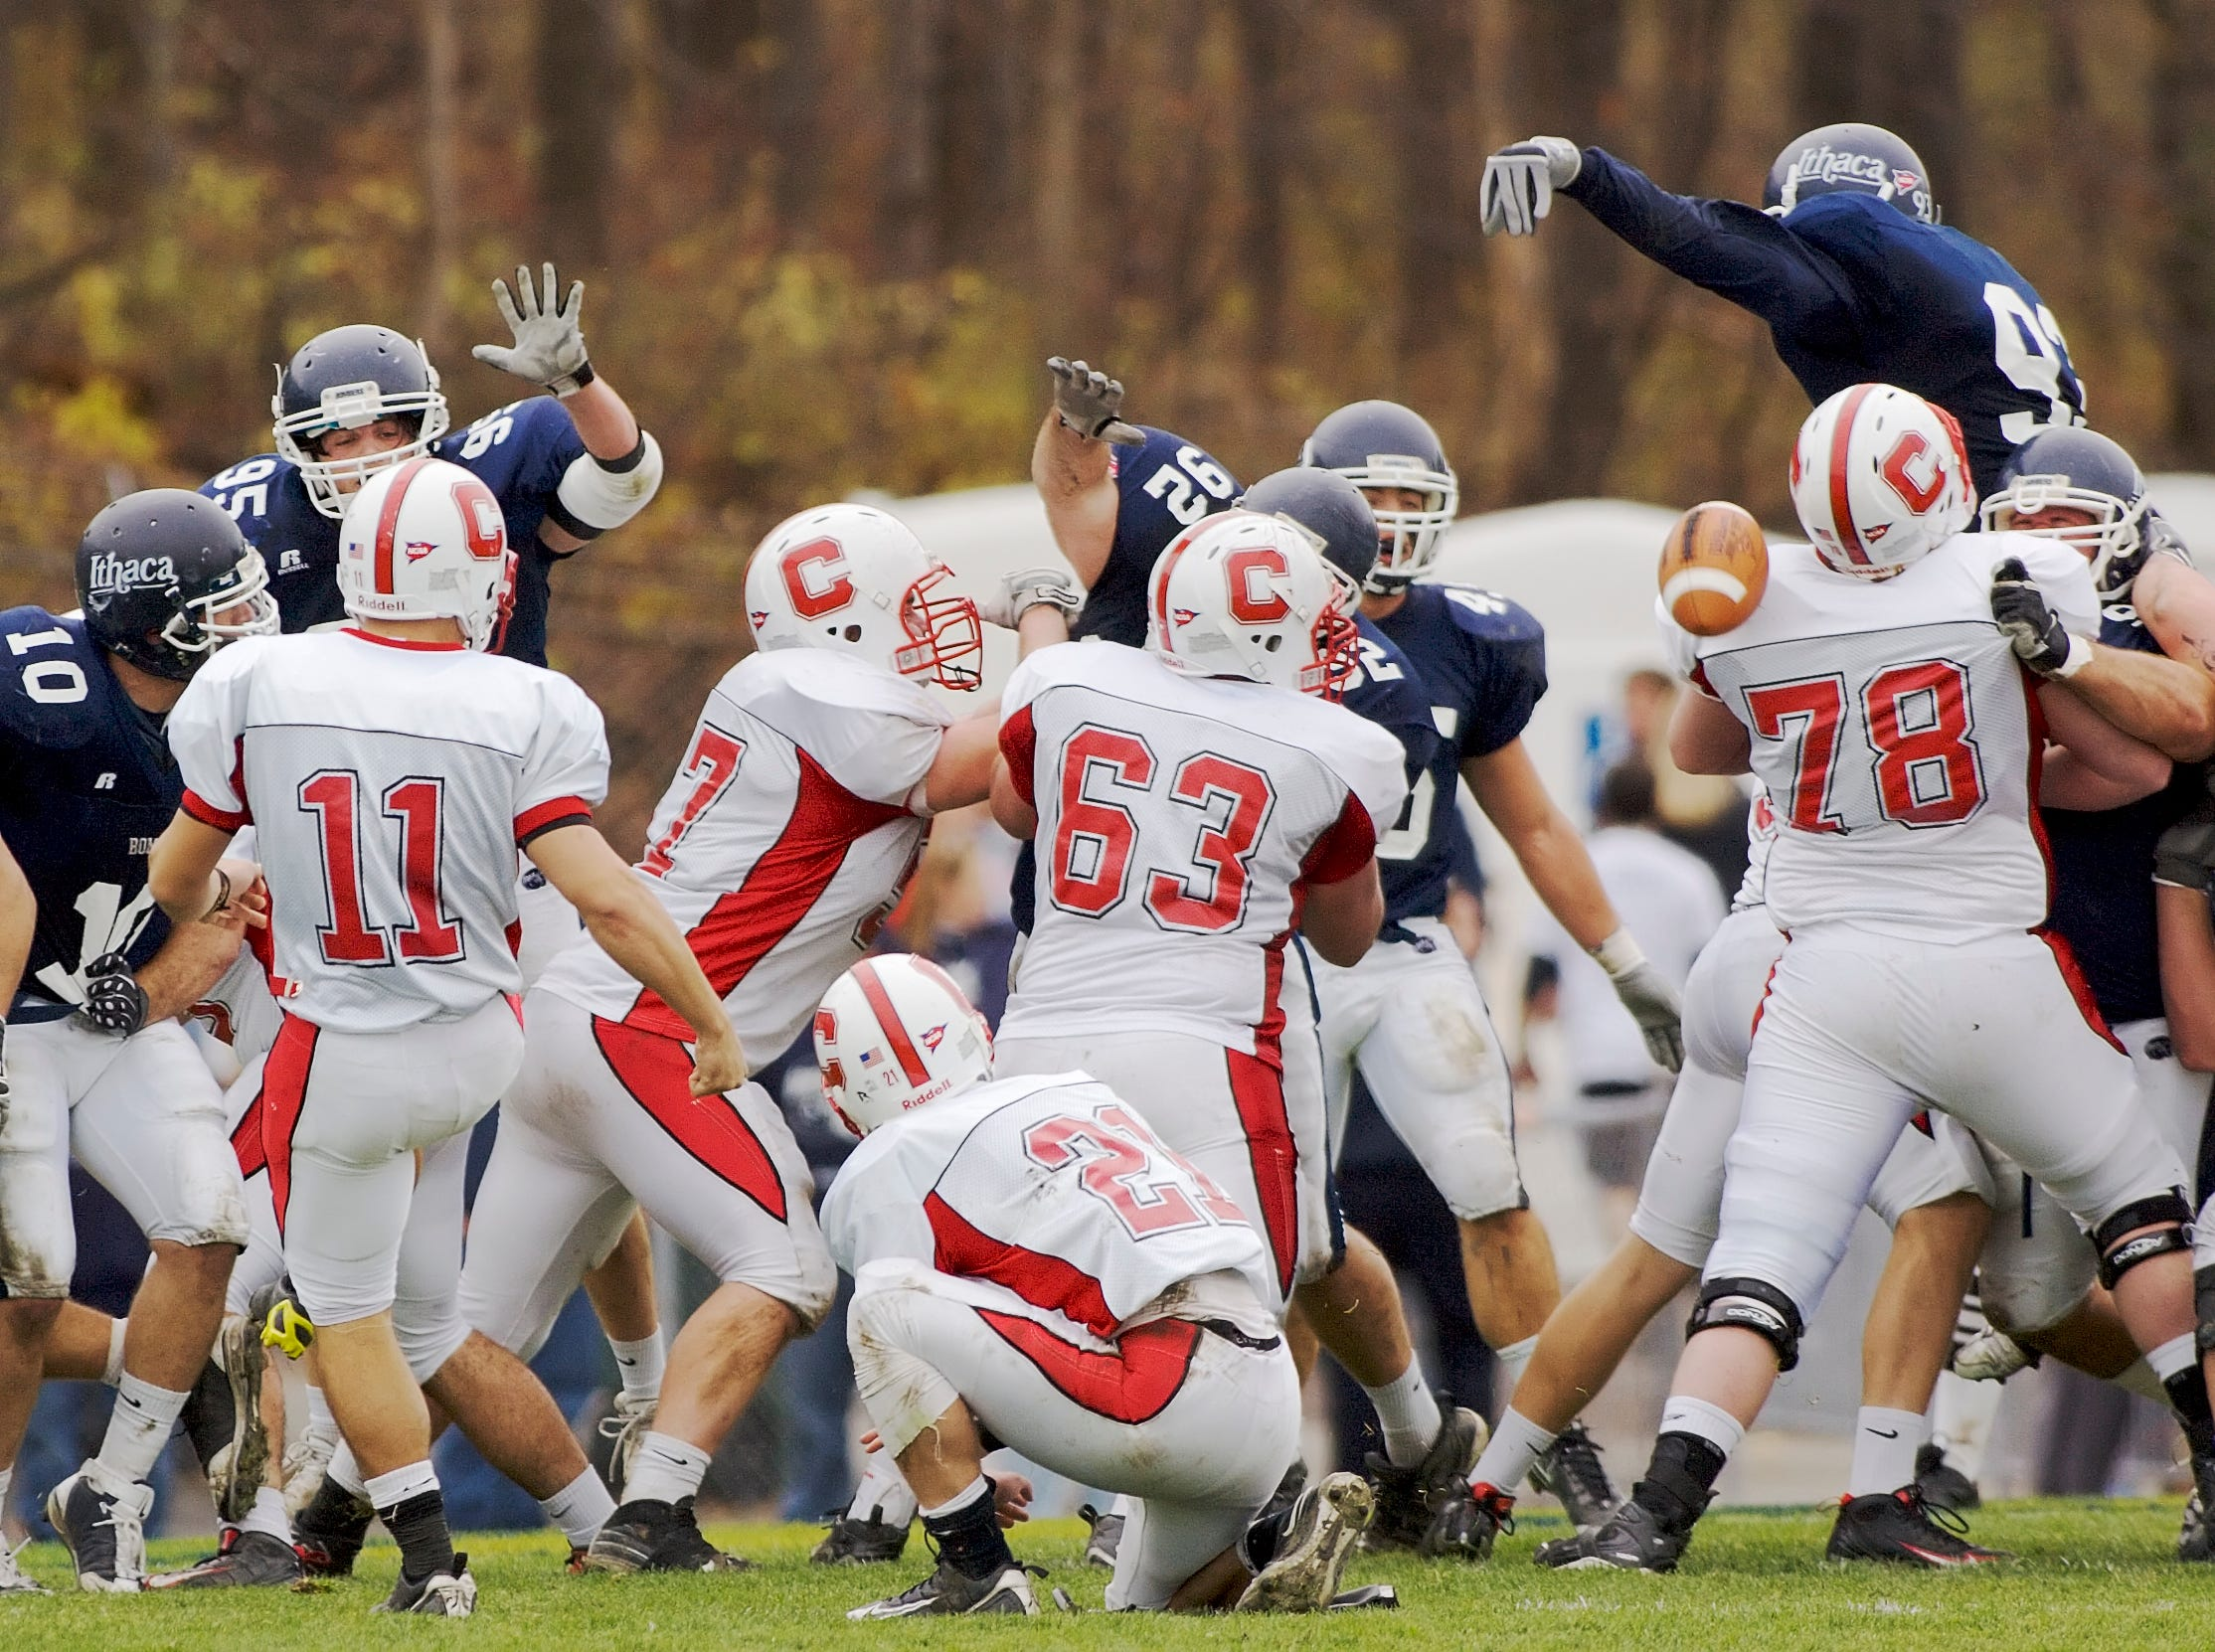 2009: Ithaca's Adam Drescher, top right blocks the extra point kick by Marc Corrado, left after Cortland scored their first touchdown Saturday afternoon during the annual Cortaca Jug game. Holder Wayne Wheeler center picked up the ball, but he was unable to run or pass the ball.